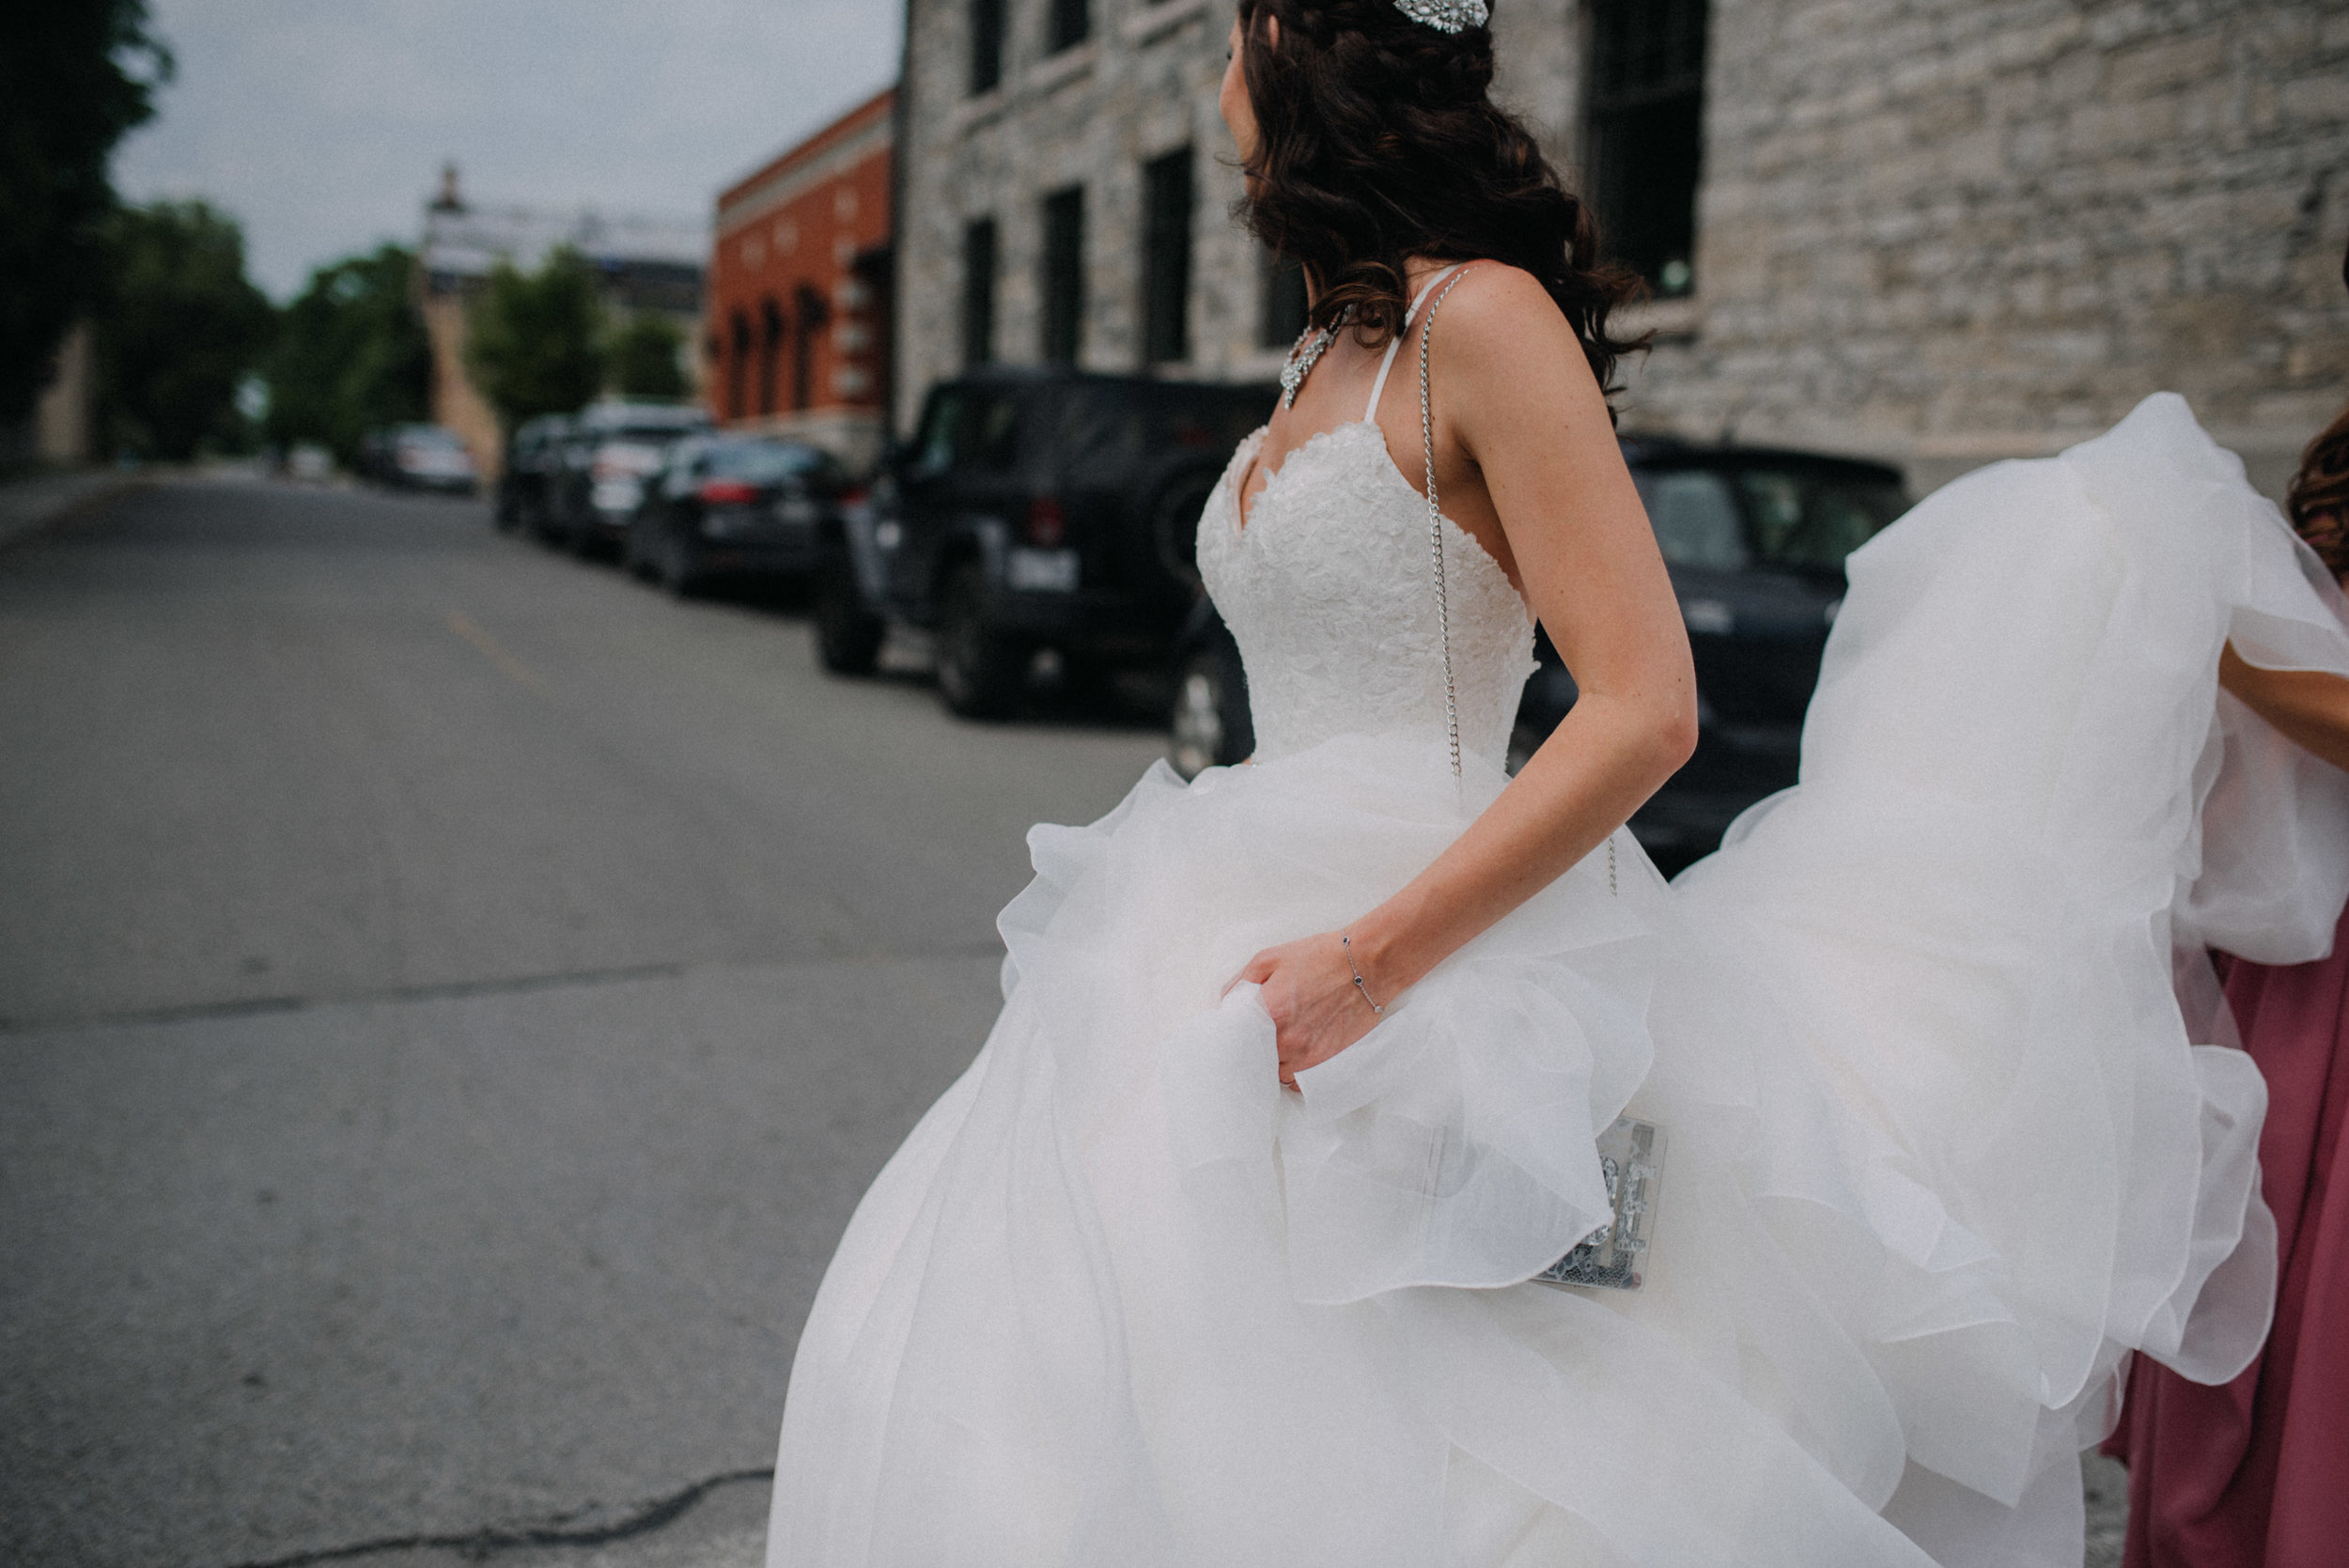 photographe_mariage_outaouais_gatineau_ottawa_wedding_photographer_candid_lifestyle_documentary_natasha_liard_photographs (18).jpg